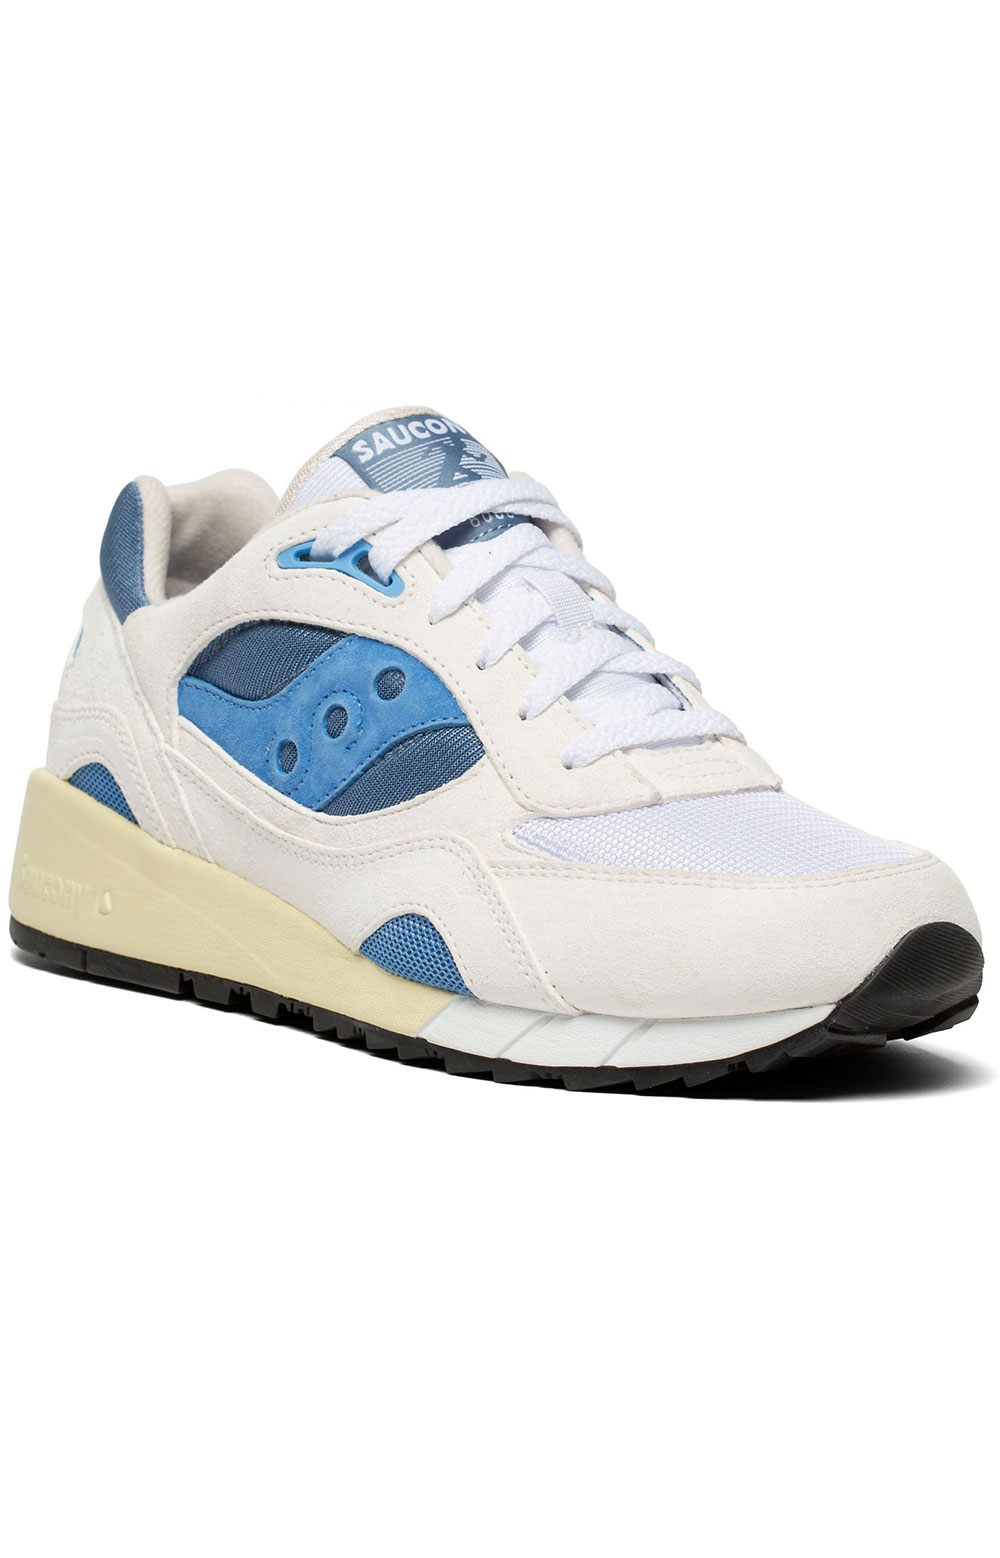 (S70441-13) Shadow 6000 Shoes - White/Blue 5